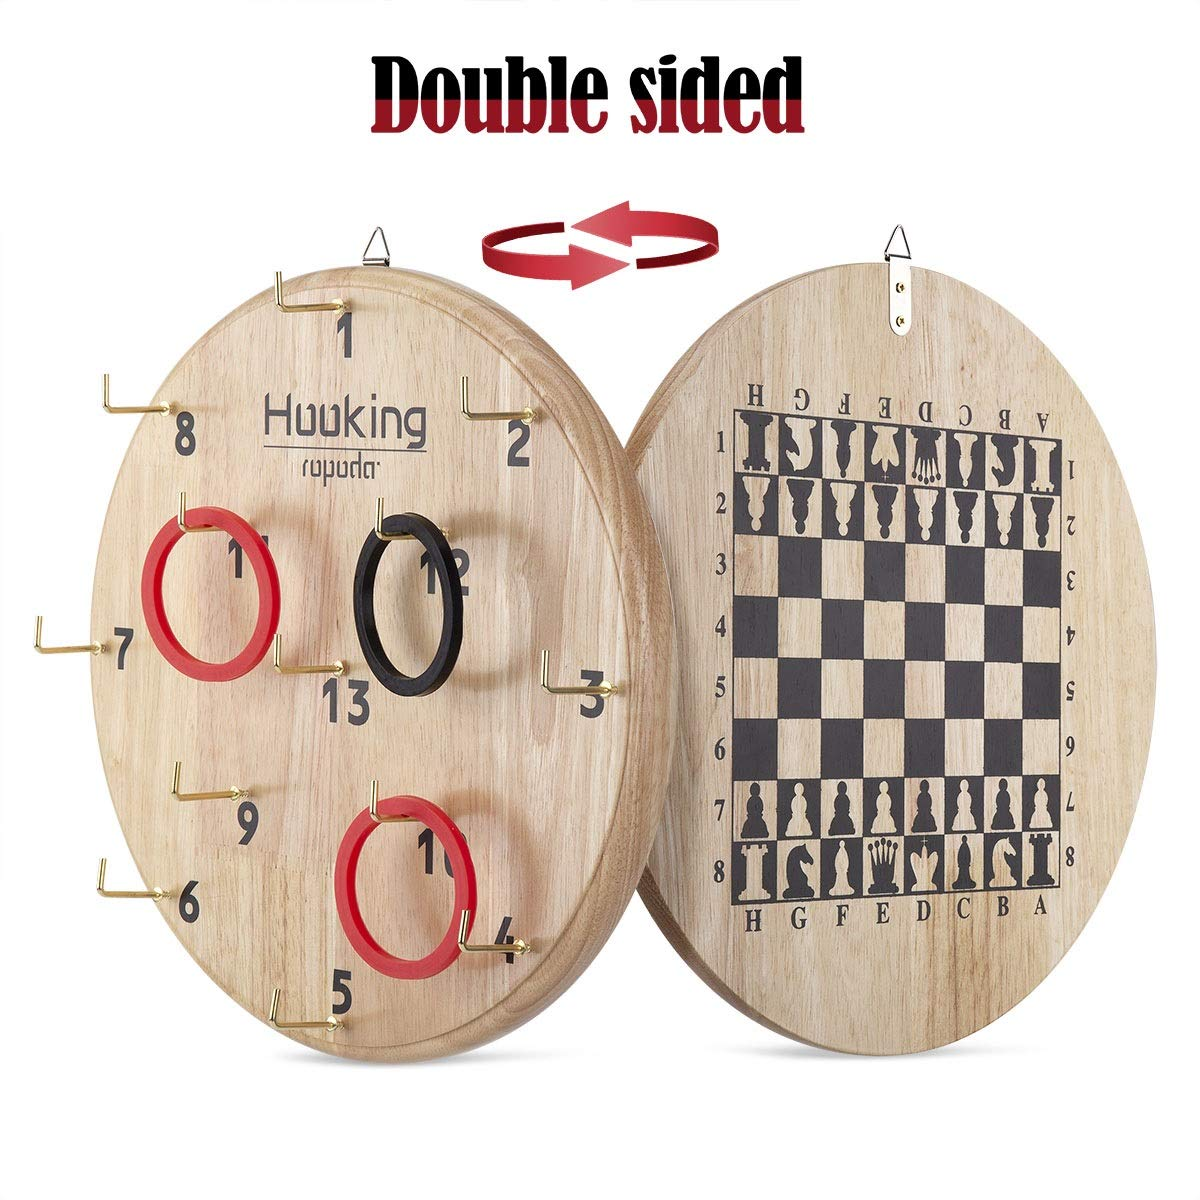 ROPODA Ultimate Hook & Ring Toss Game for Kids & Adults - Fun Ring Tossing Game Set, Safe & Durable Design, Easy to Install and Perfect for Children's Parties, a Man Cave, Home or Office